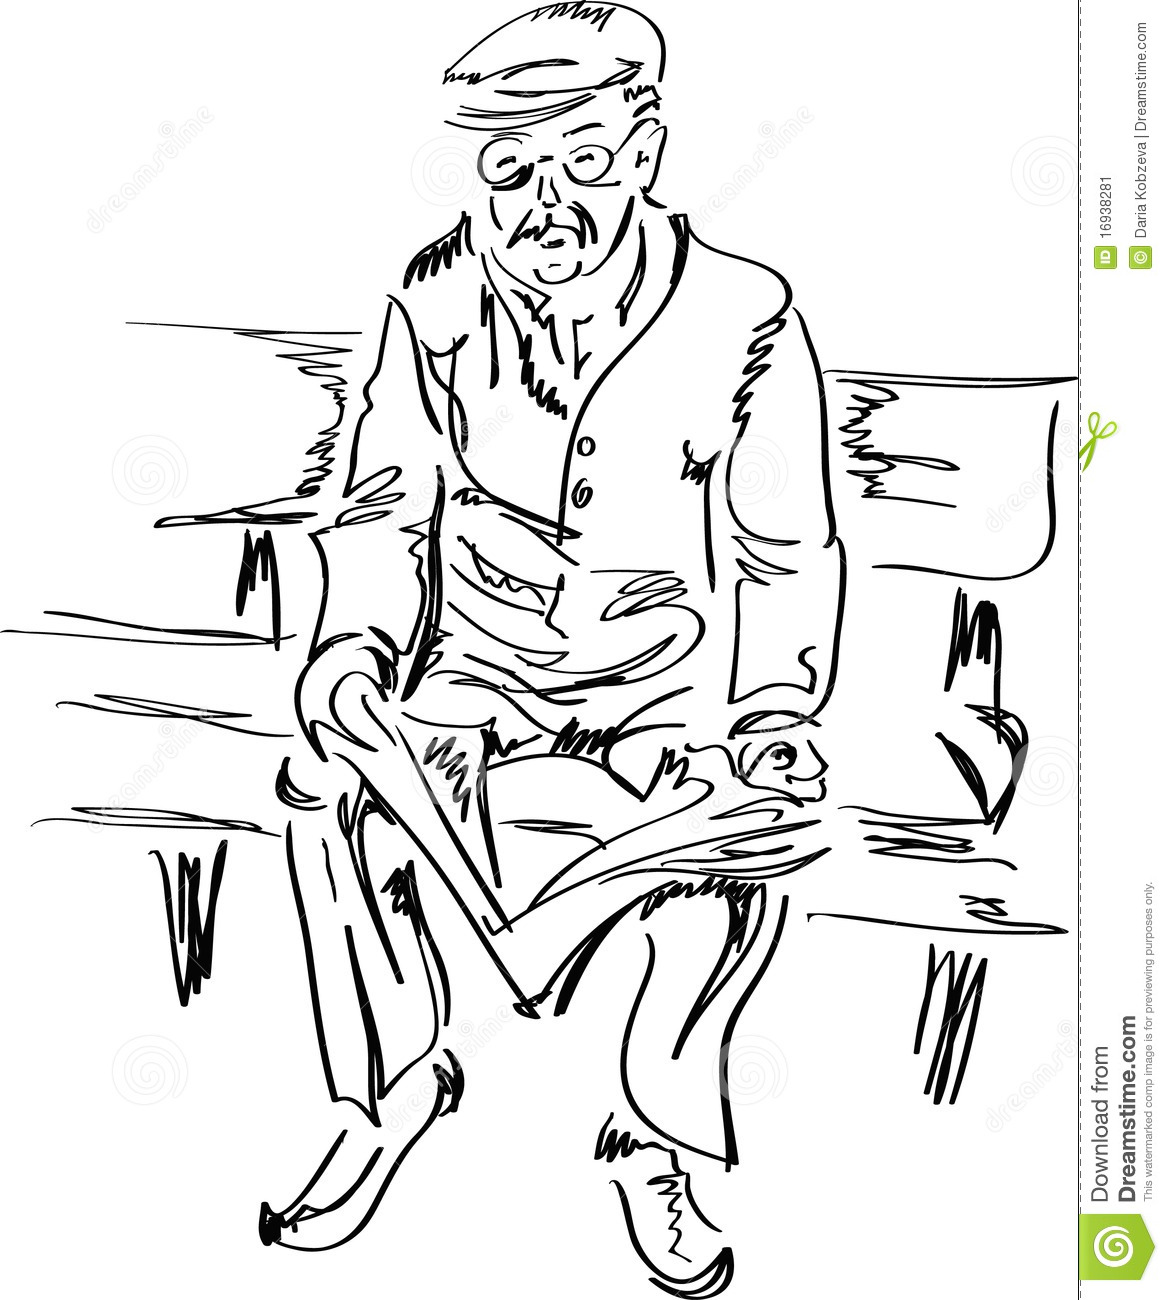 old man reading a newspaper stock vector - illustration of outdoors